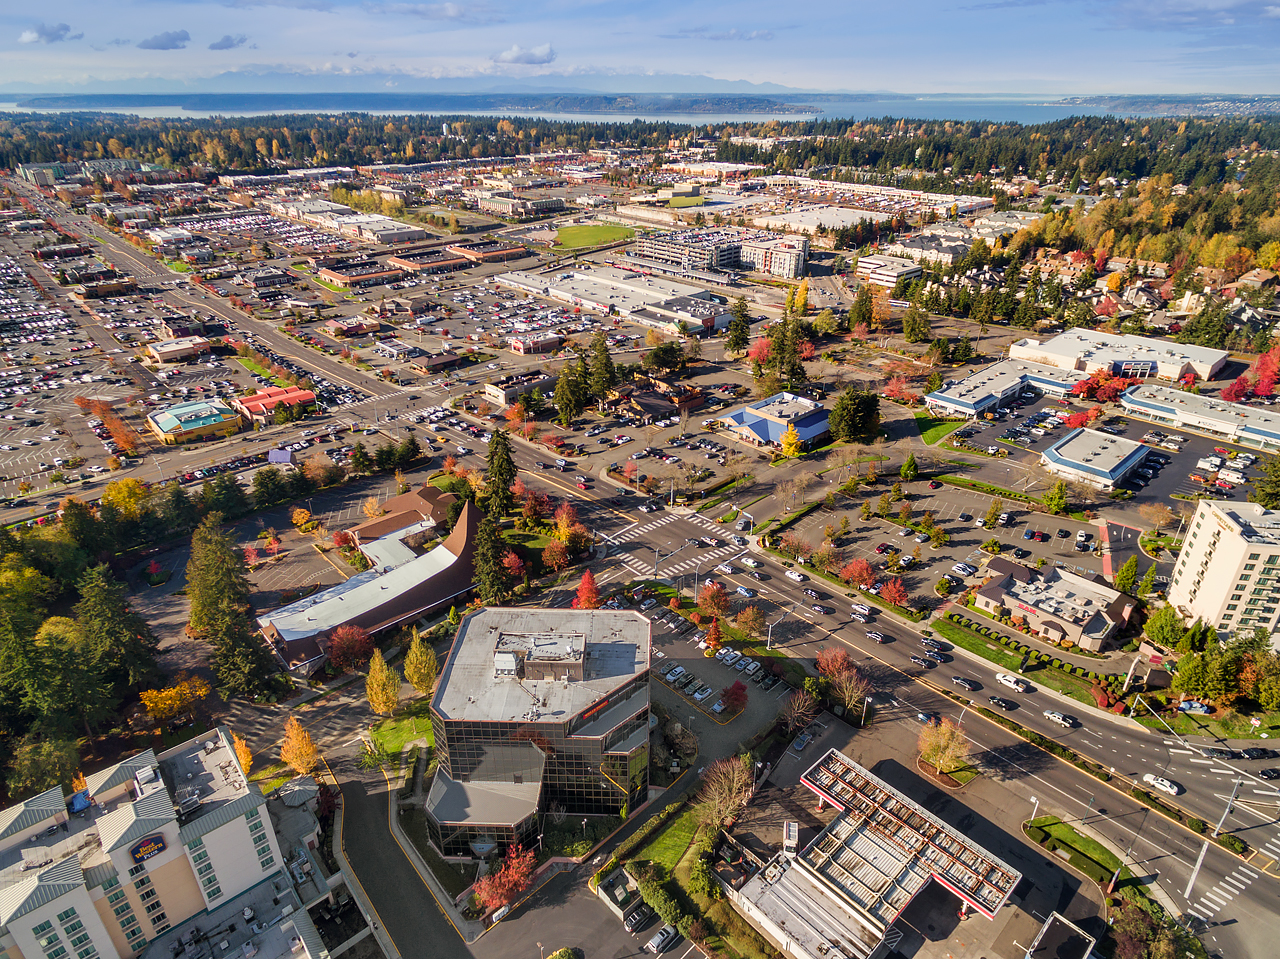 The Centre at Federal Way